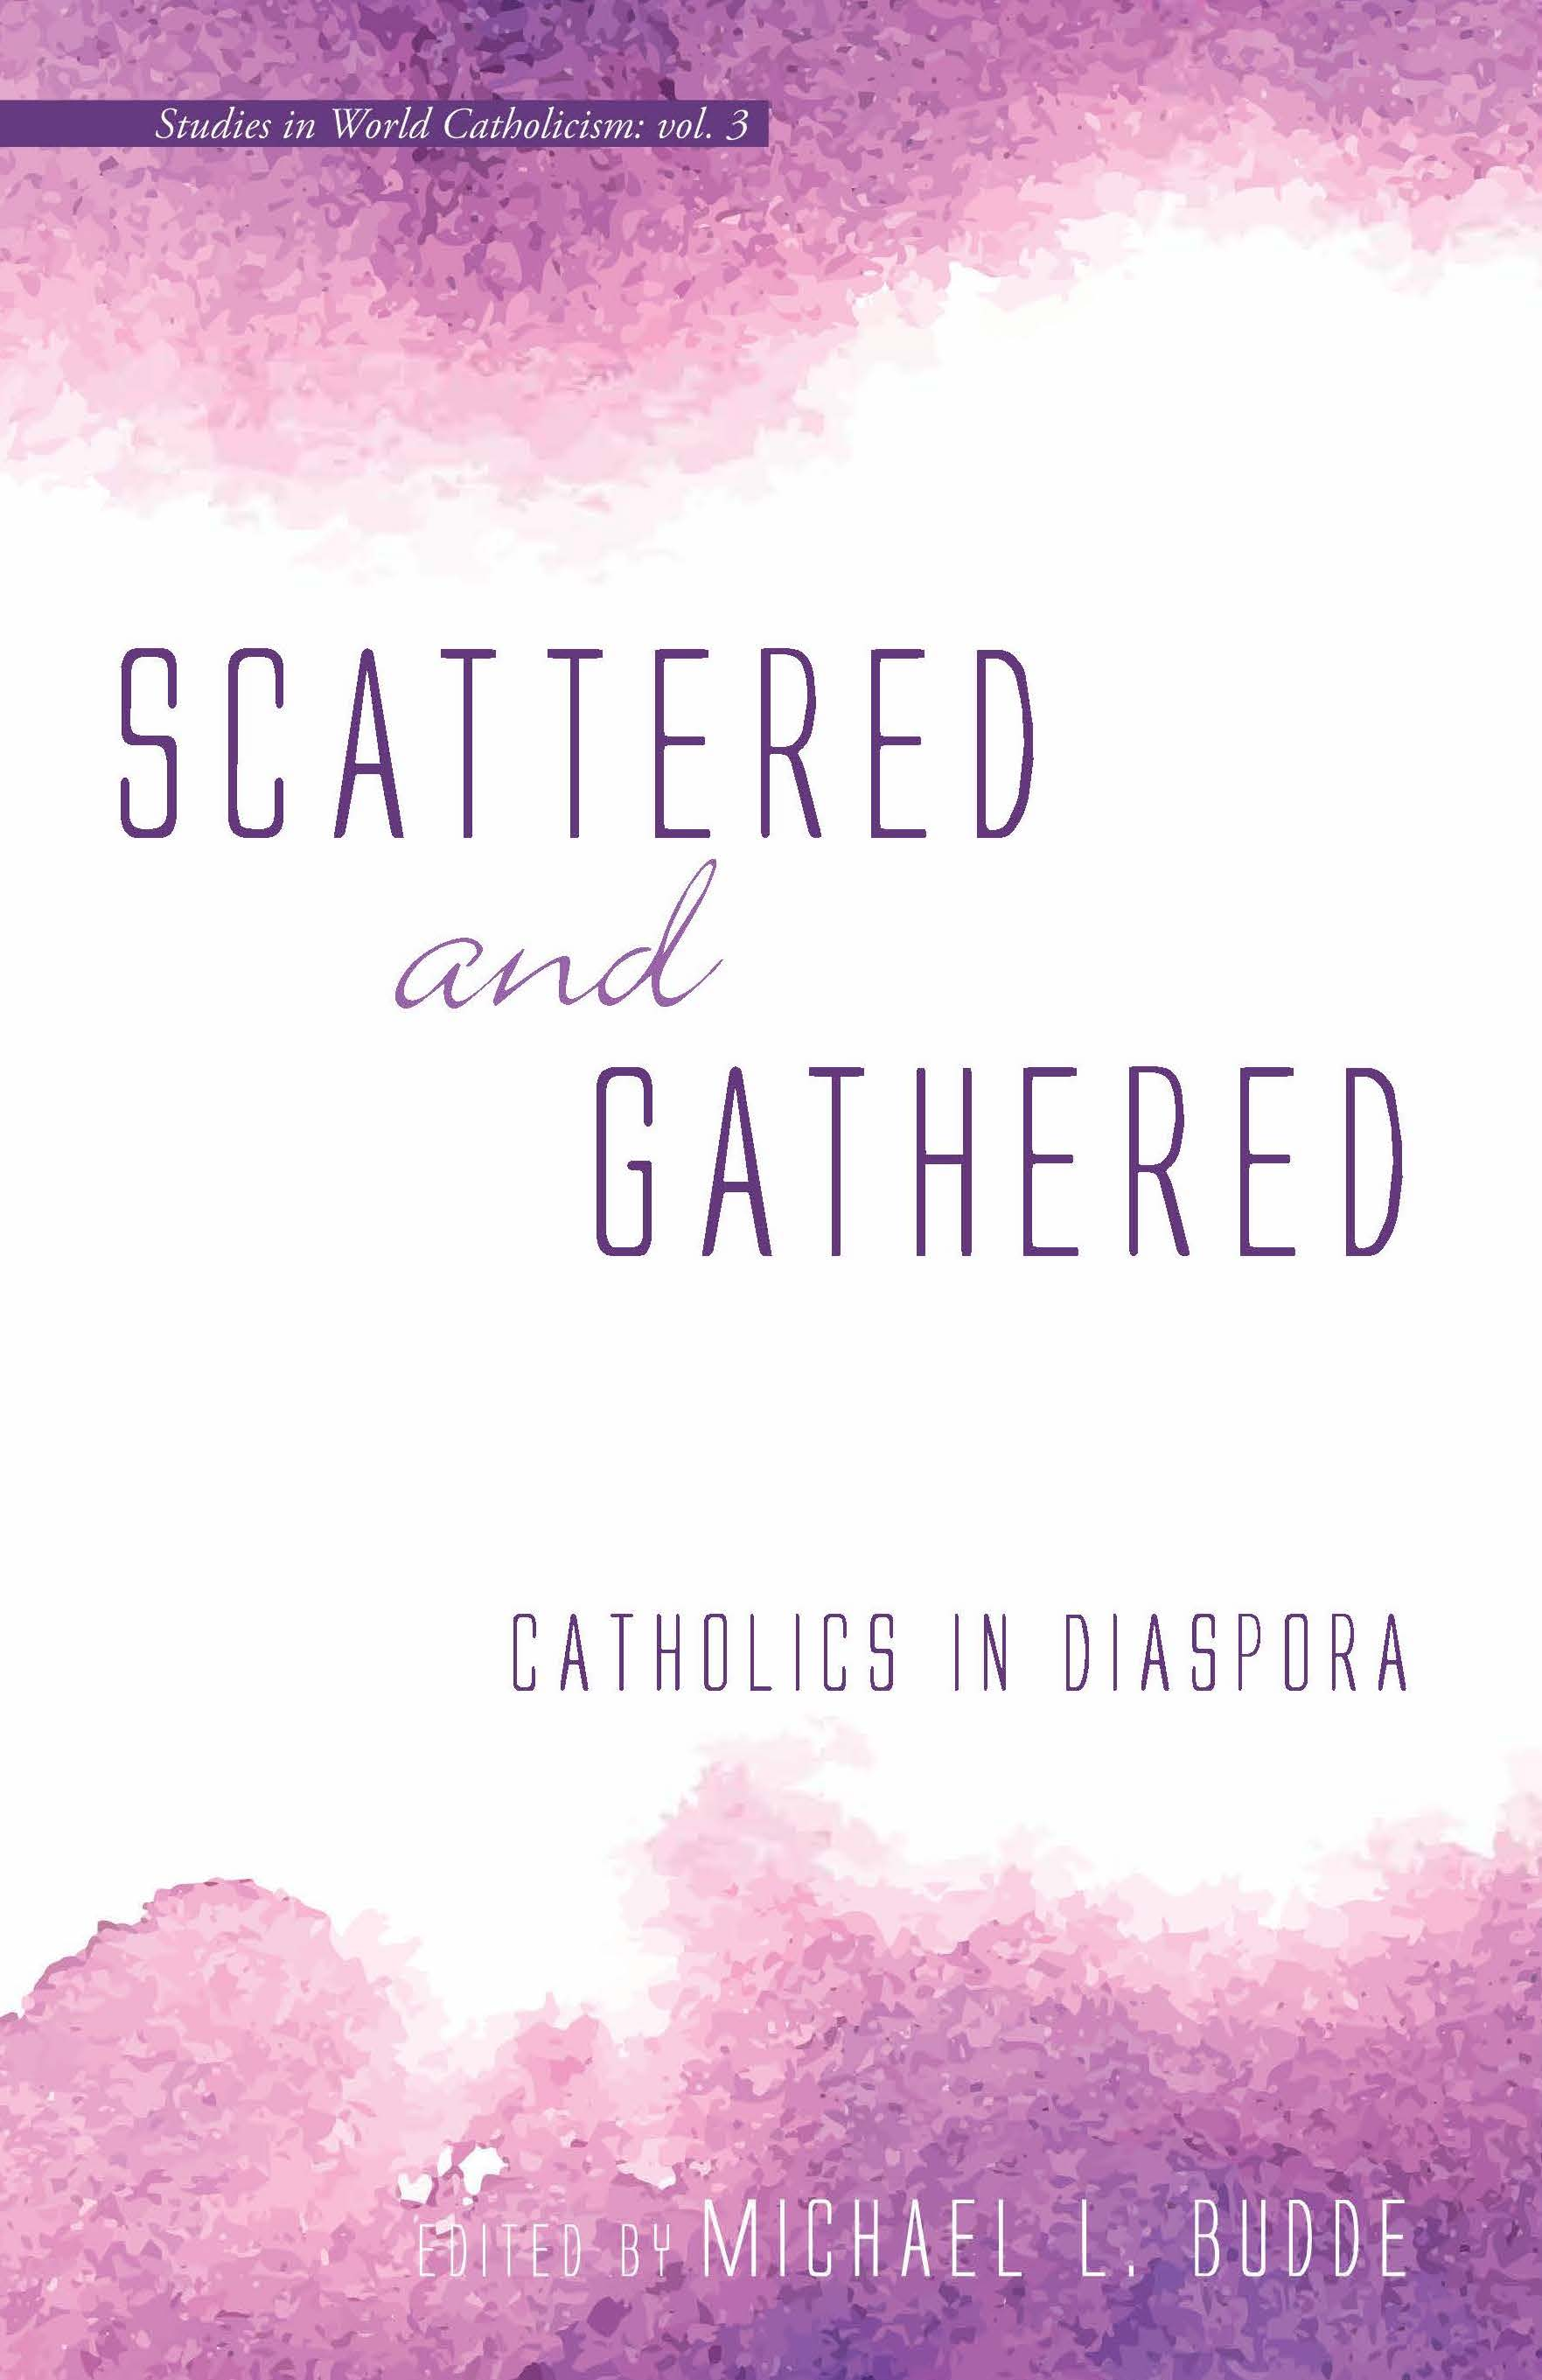 Vol. 3, Scattered & Gathered